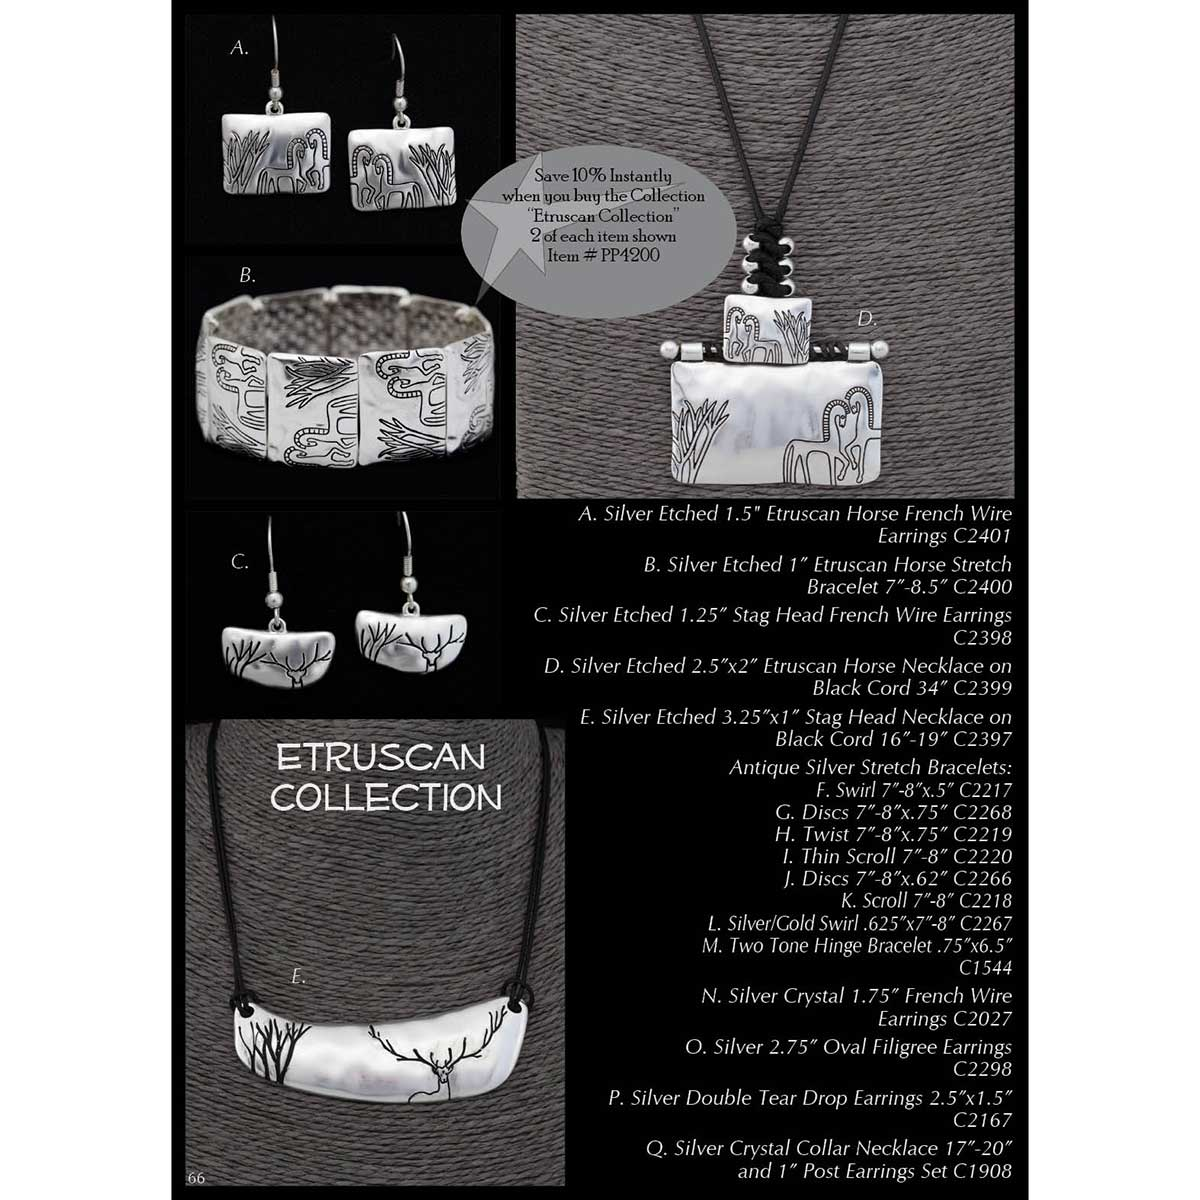 Etruscan Collection PP4200